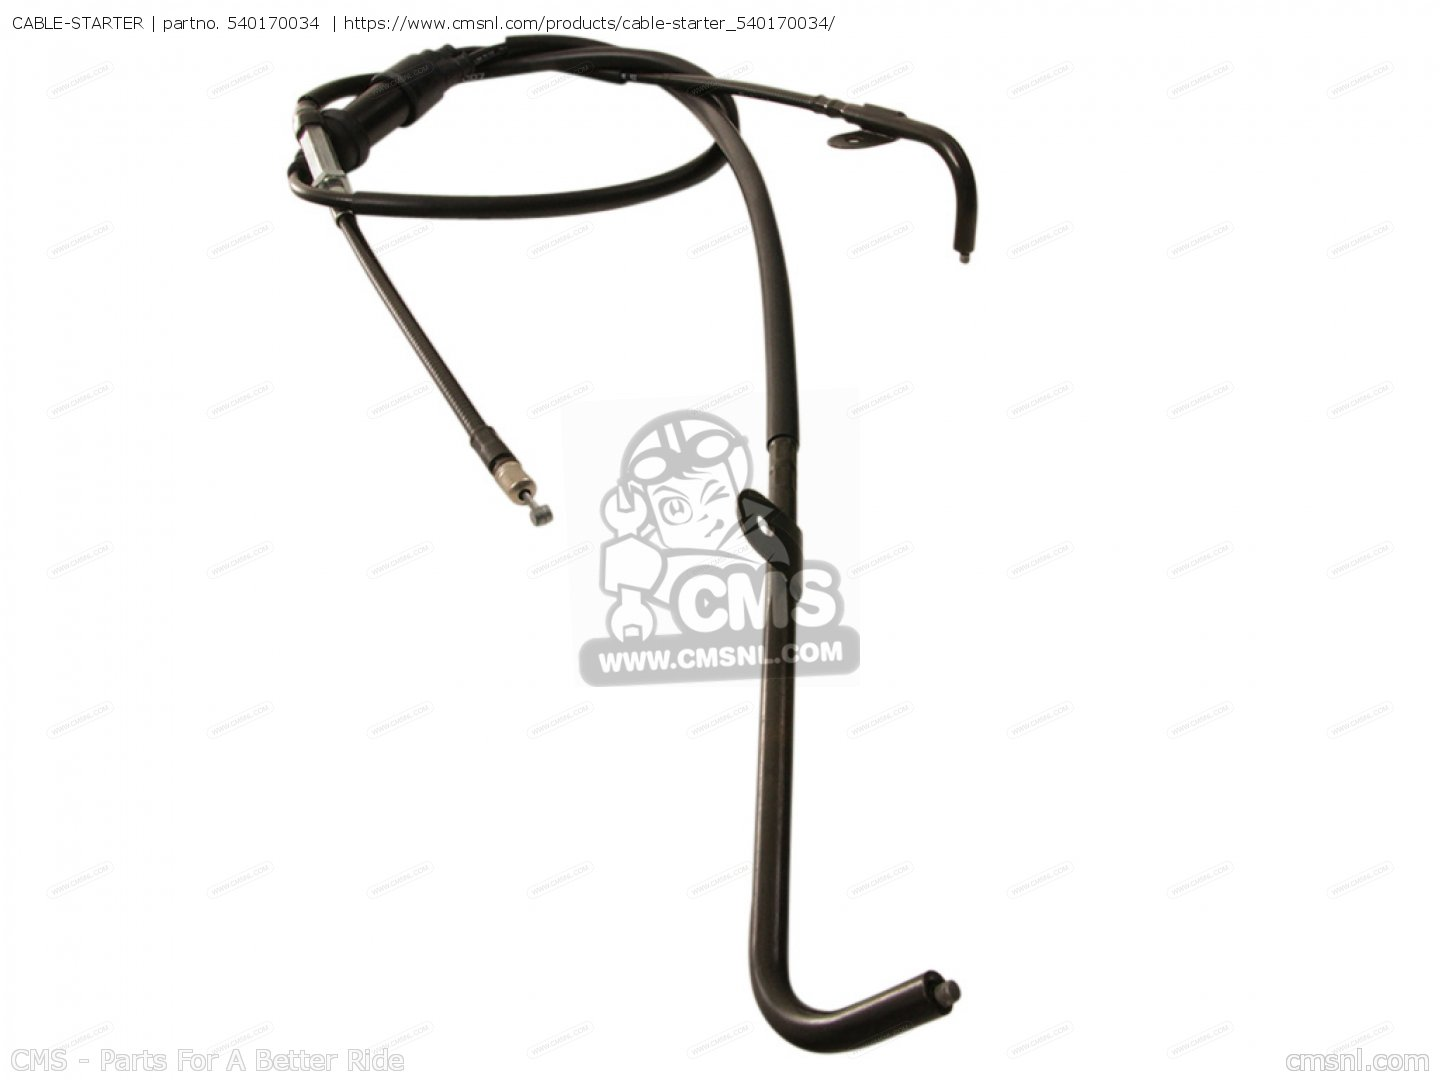 CABLE-STARTER for KVF650-FCS BRUTE FORCE 650 4X4I 2012 USA